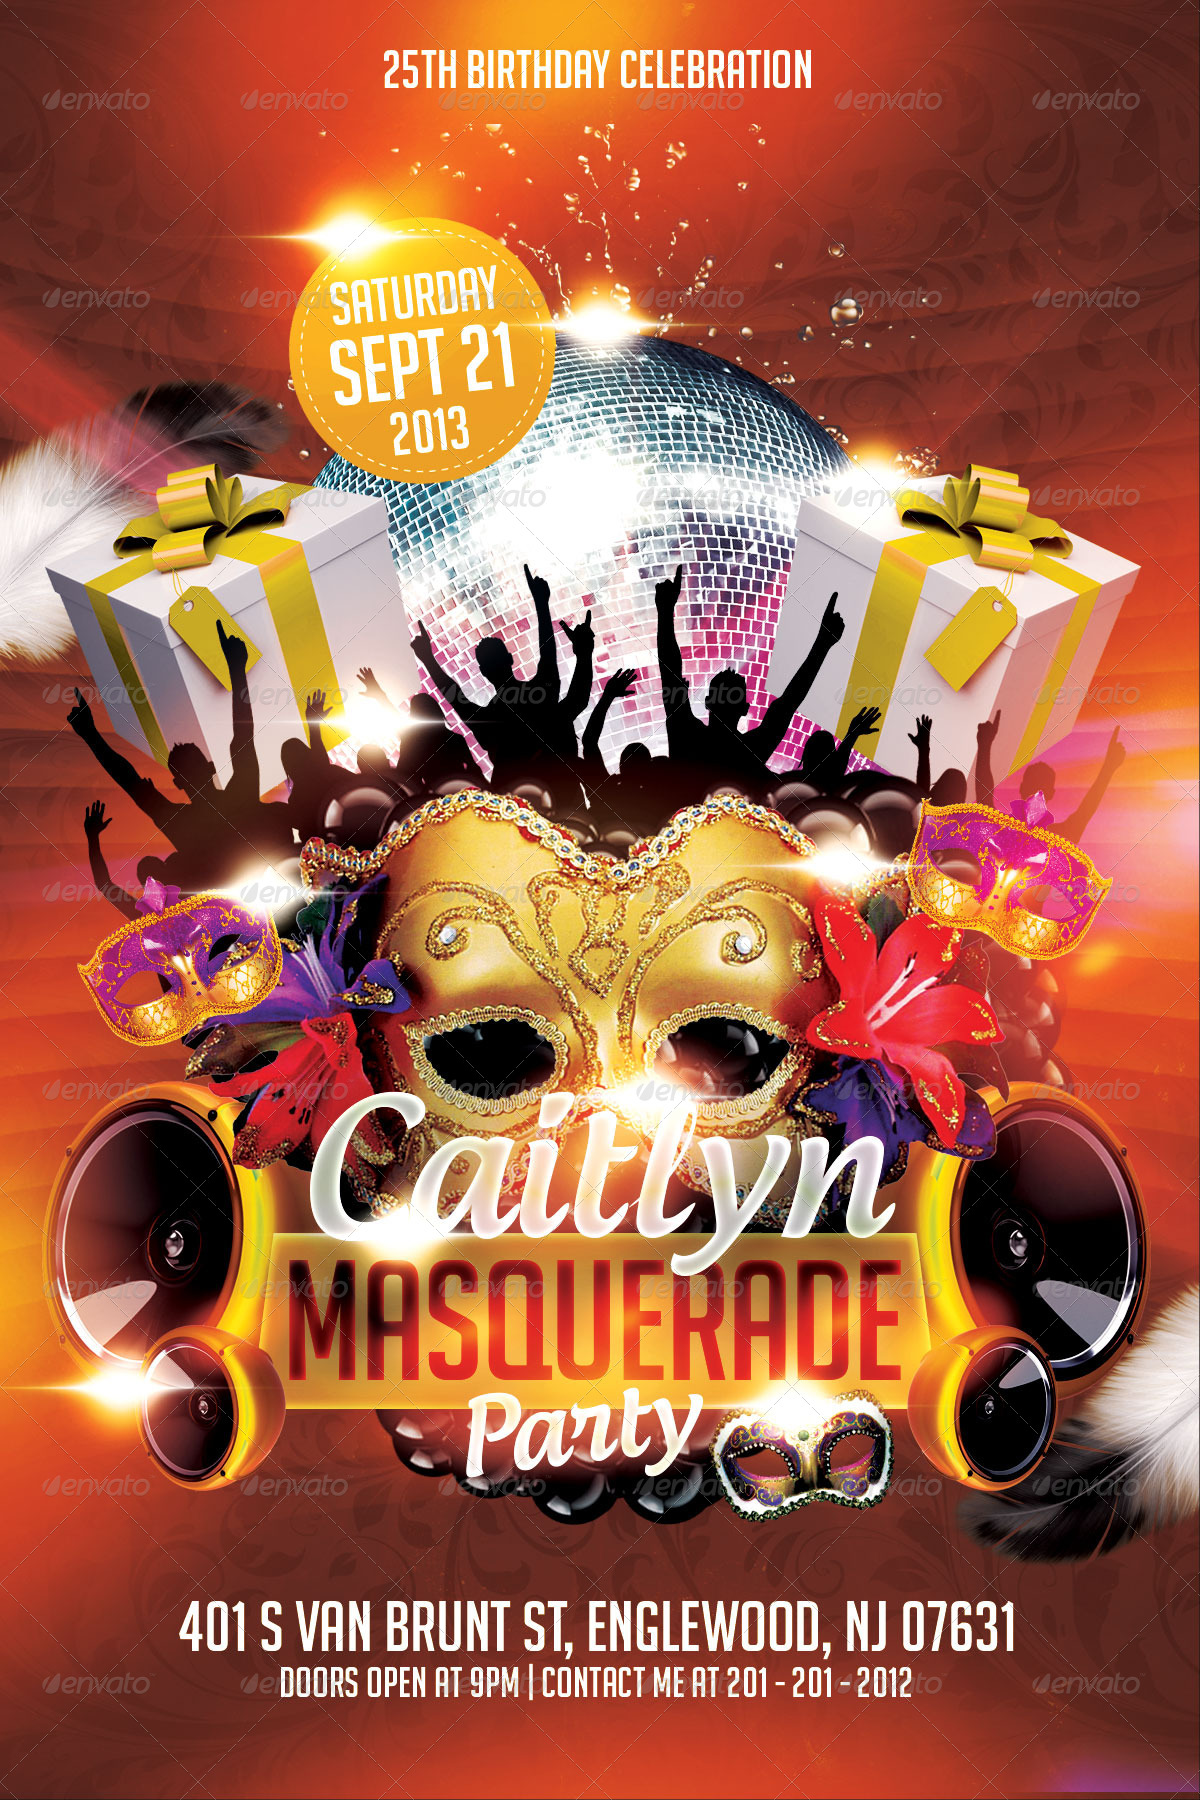 masquerade birthday party flyer template clubs parties events 01 previewjpg